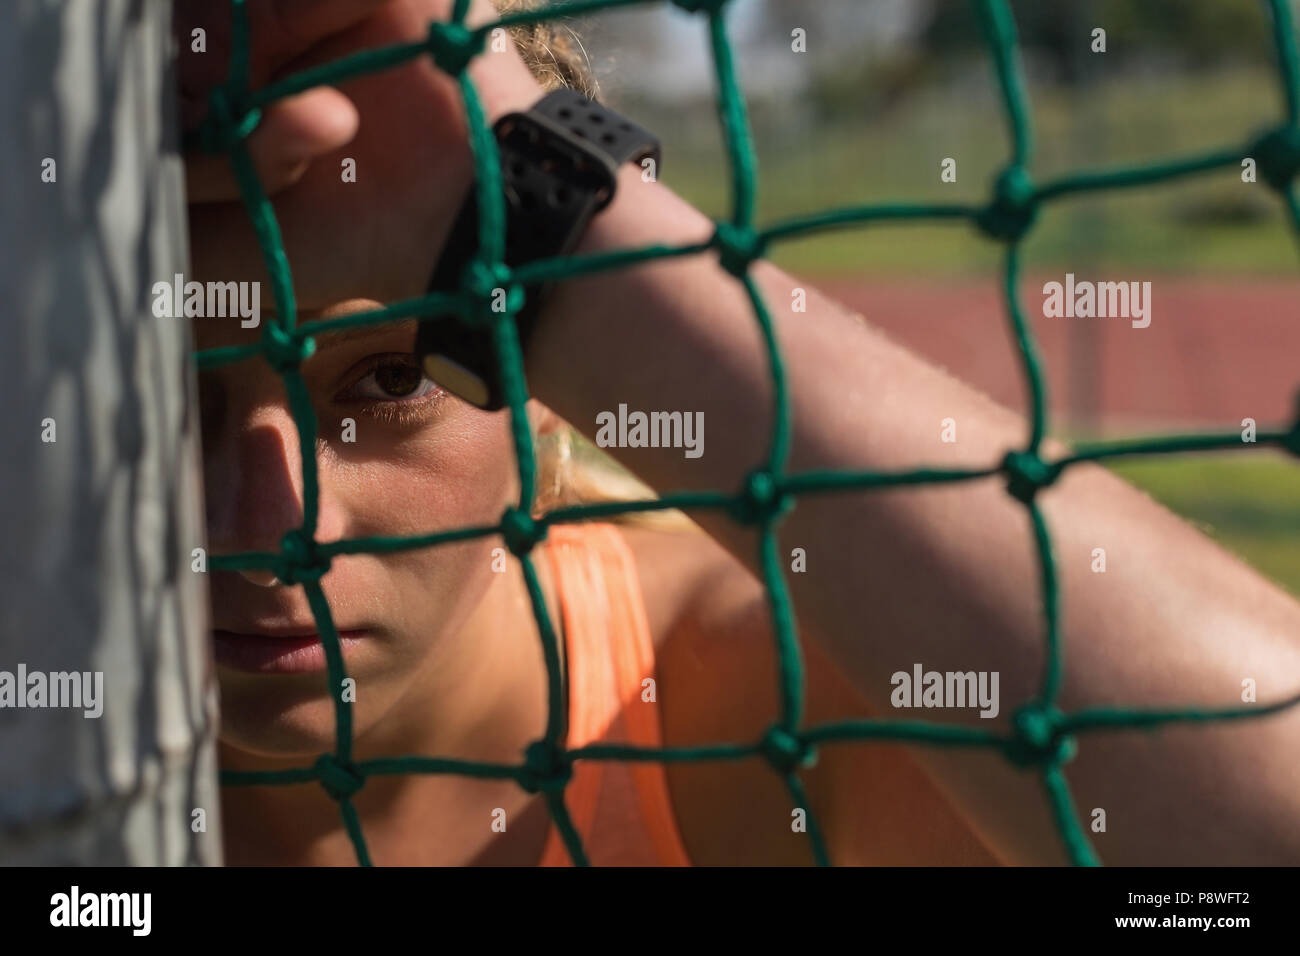 Female athlete relaxing at sports venue - Stock Image